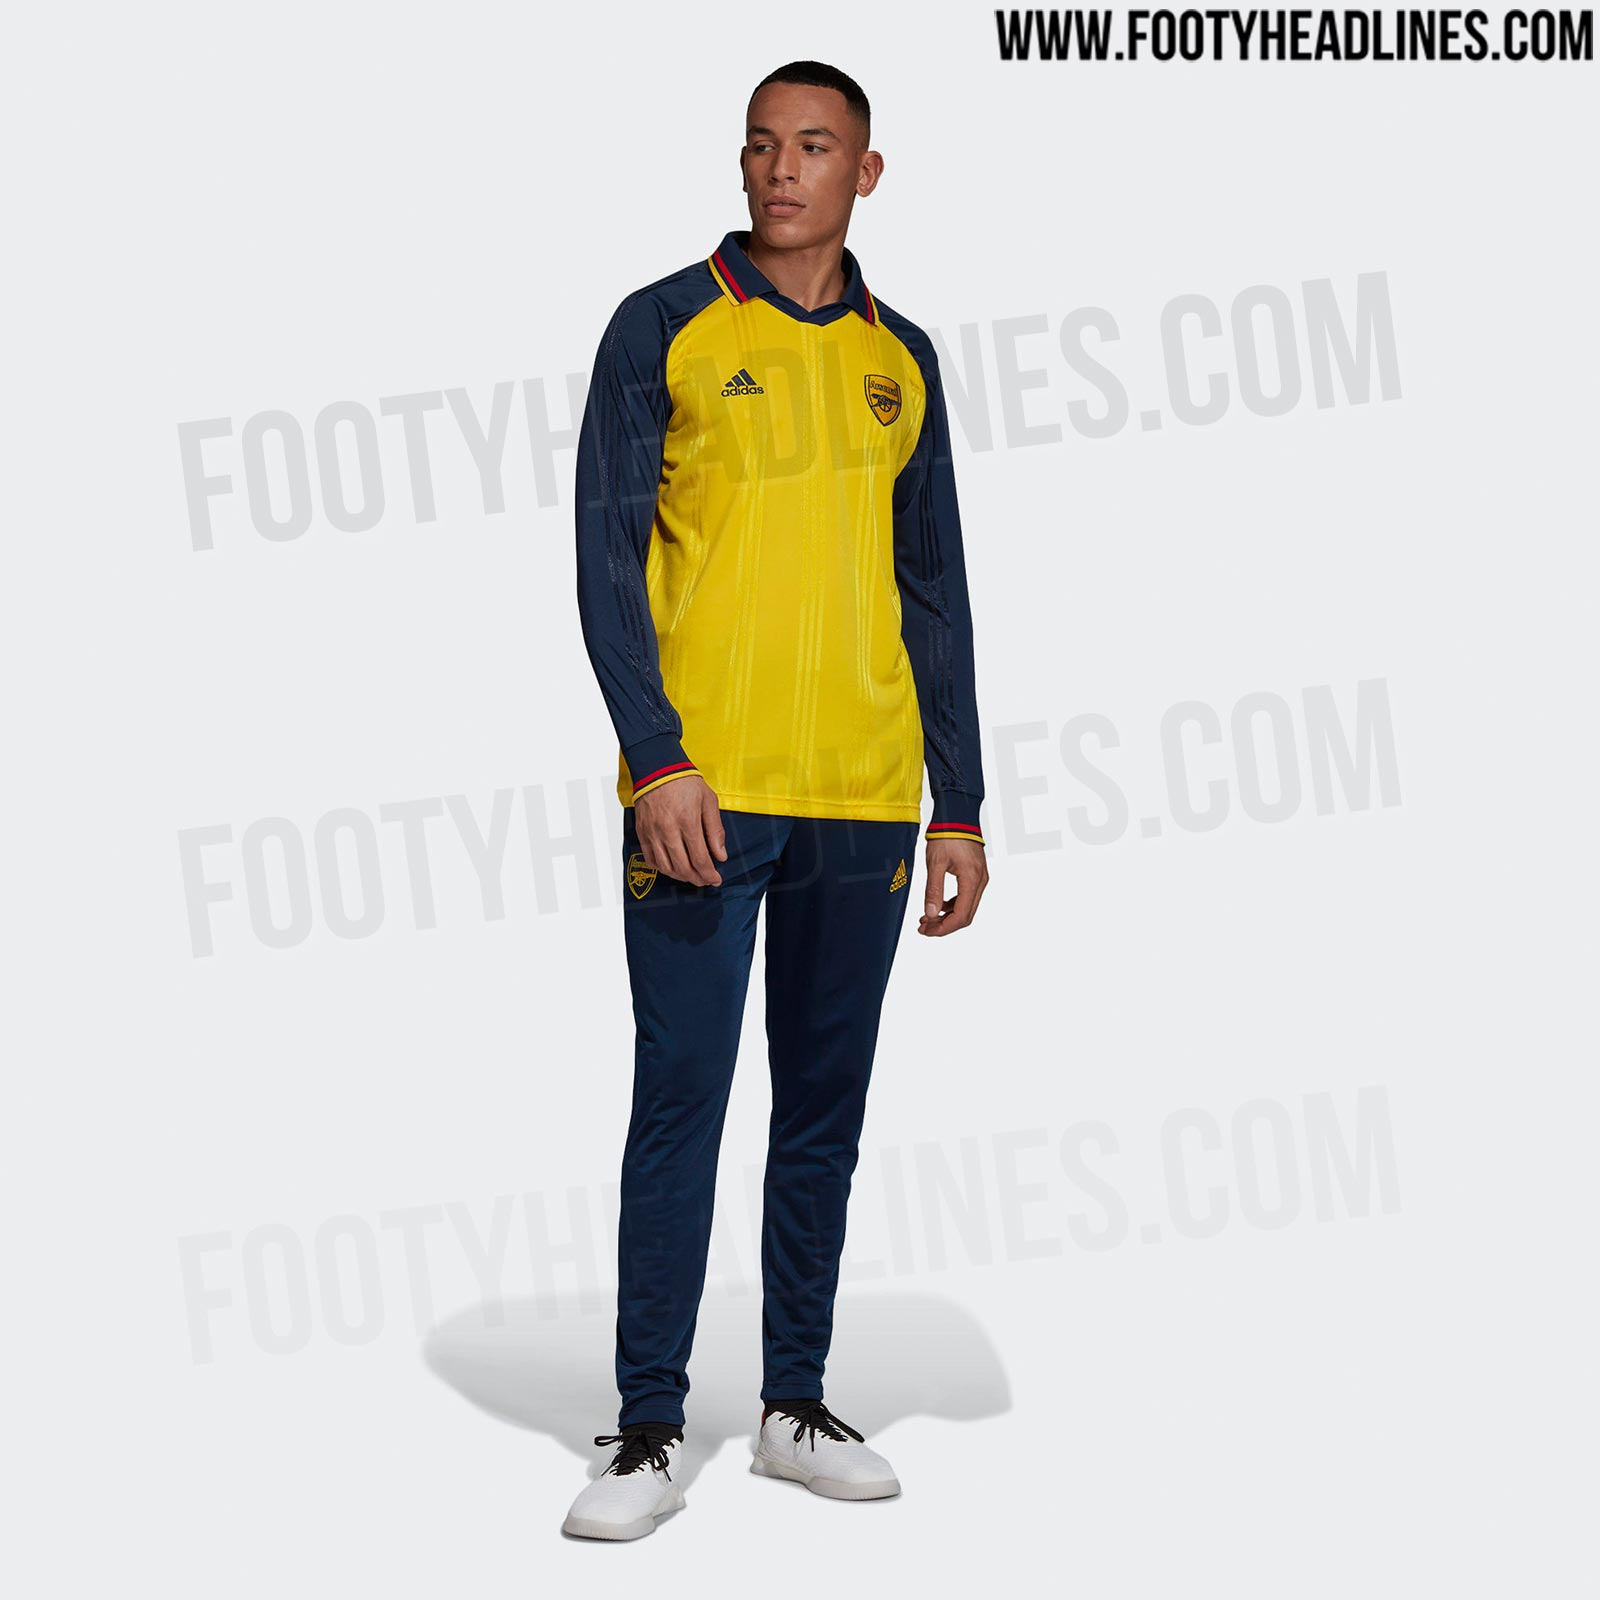 best website 2660d dc326 Adidas Arsenal 19-20 Icon Retro Jersey Released + Prototype ...